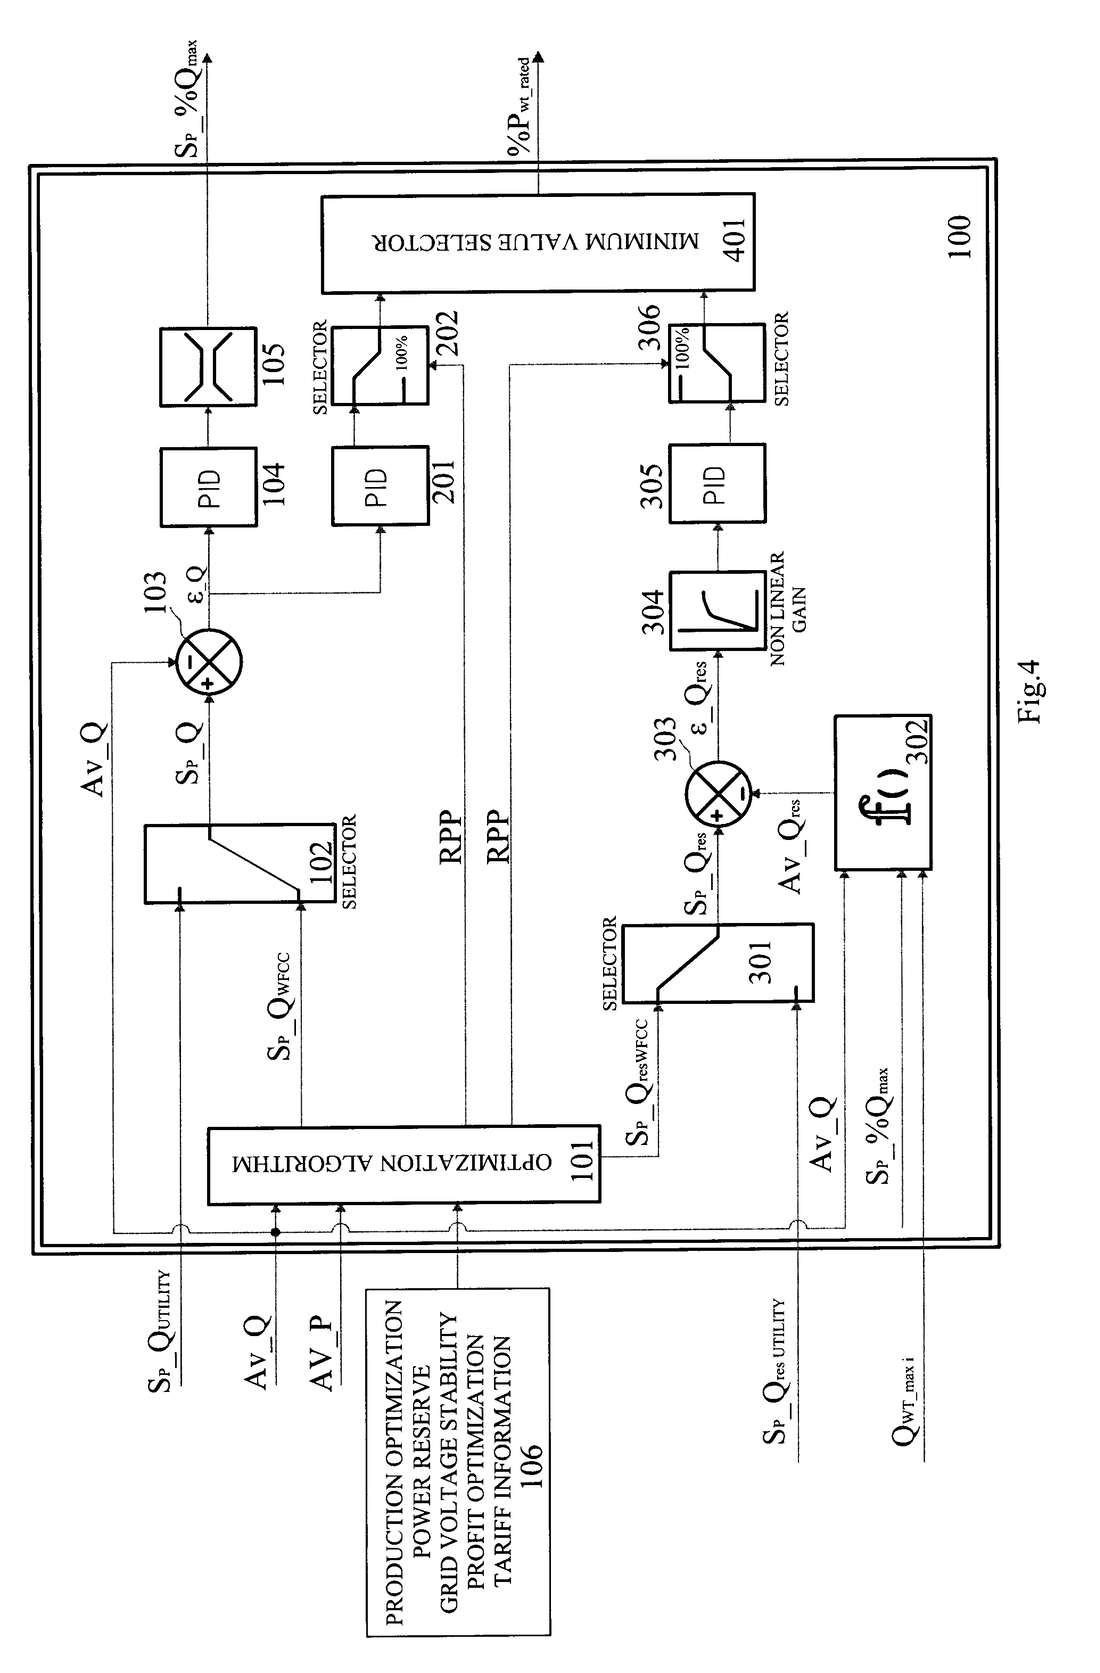 16 Good Sample Of Wiring Diagram For House Light References